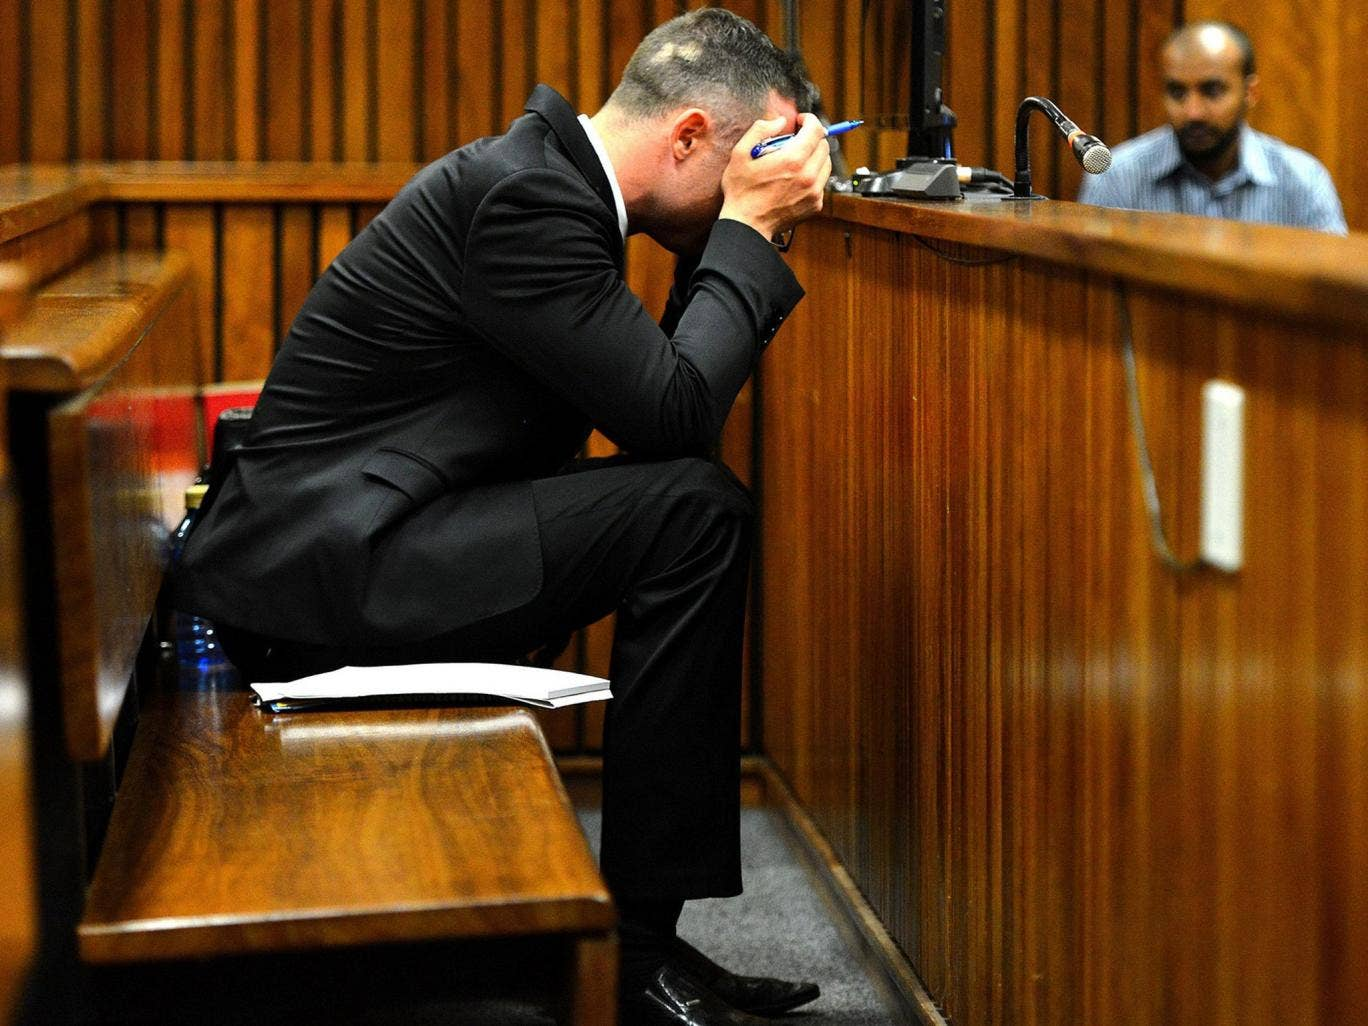 Oscar Pistorius sits in the dock at the high court in Pretoria